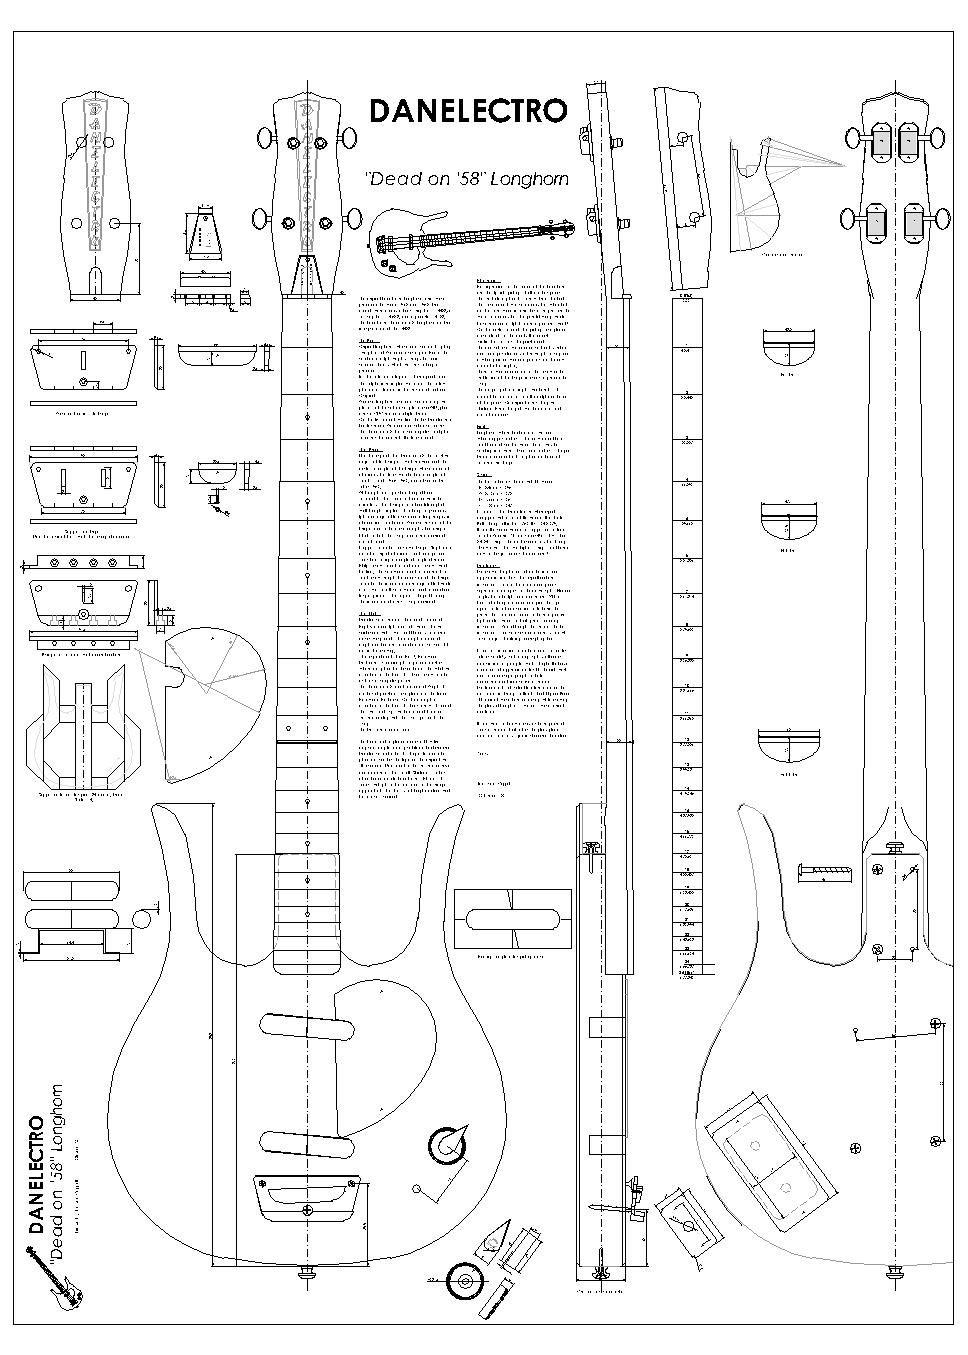 danelectro longhorn plan model download a free copy build your own become famous electric. Black Bedroom Furniture Sets. Home Design Ideas